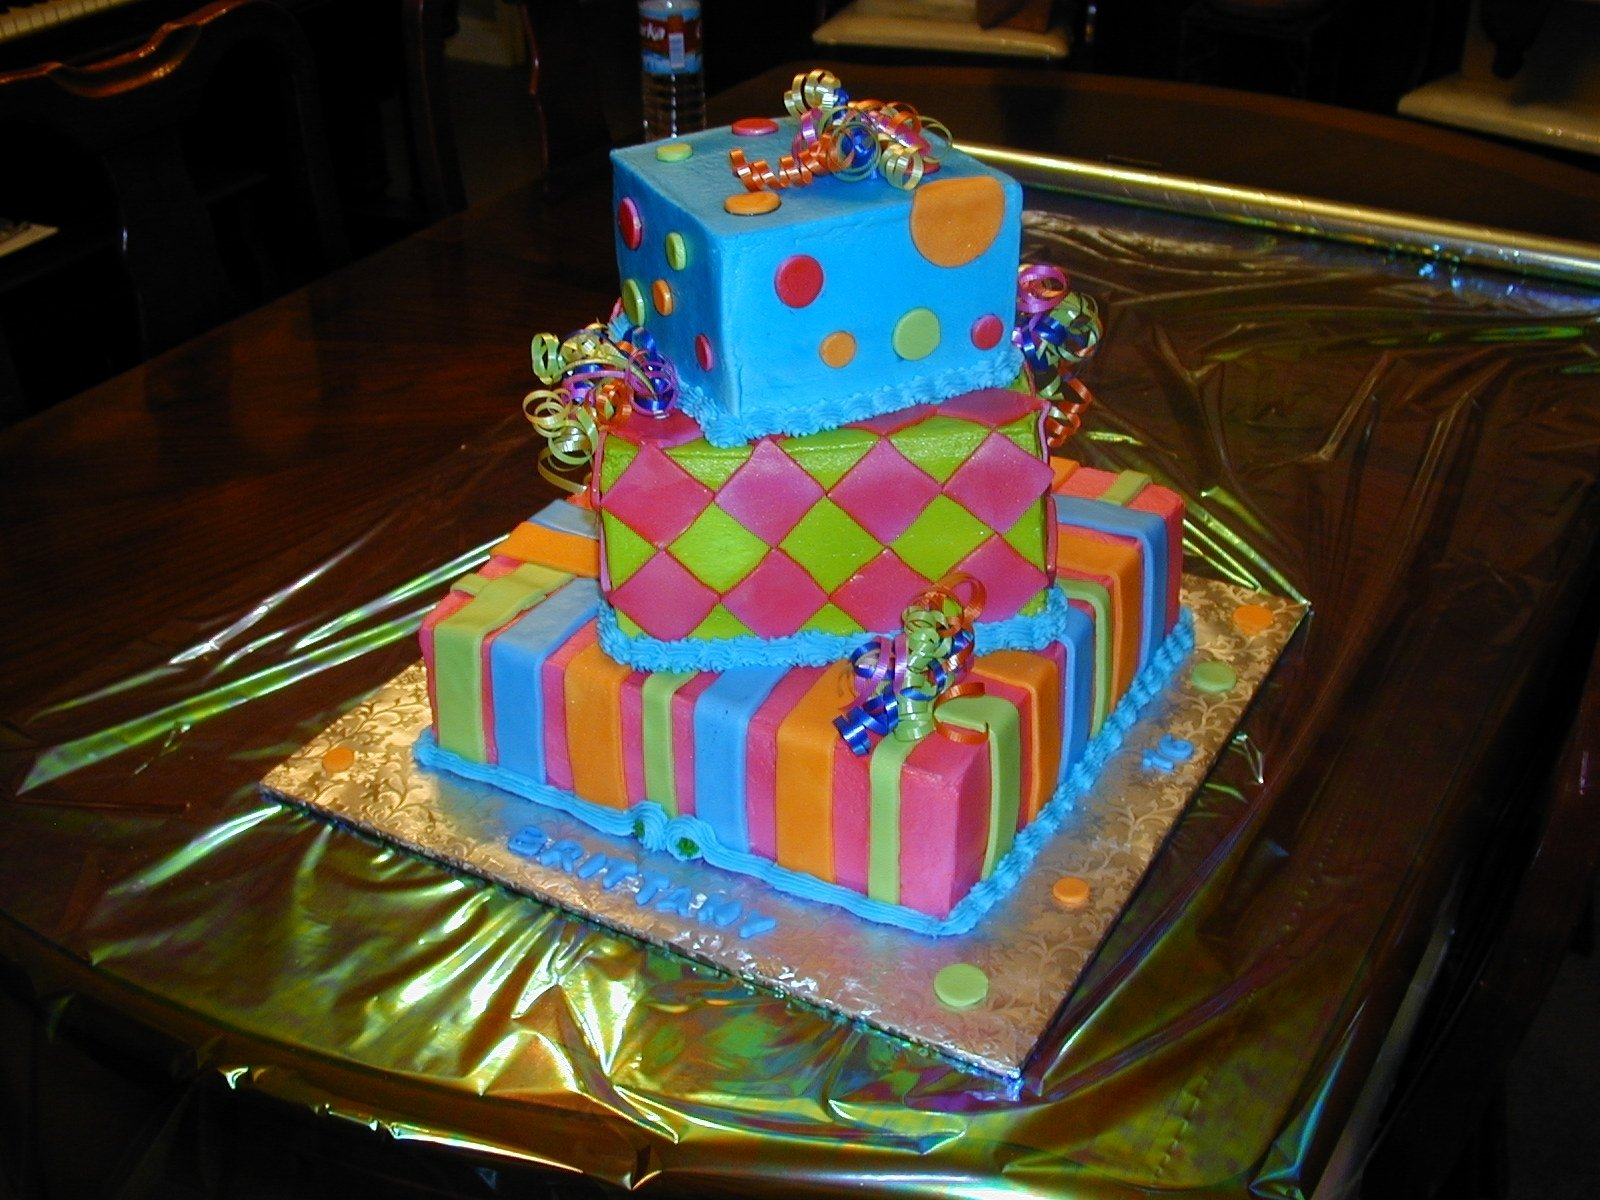 10 Most Popular 16 Year Old Birthday Ideas Cake Designs For A 13 Girl